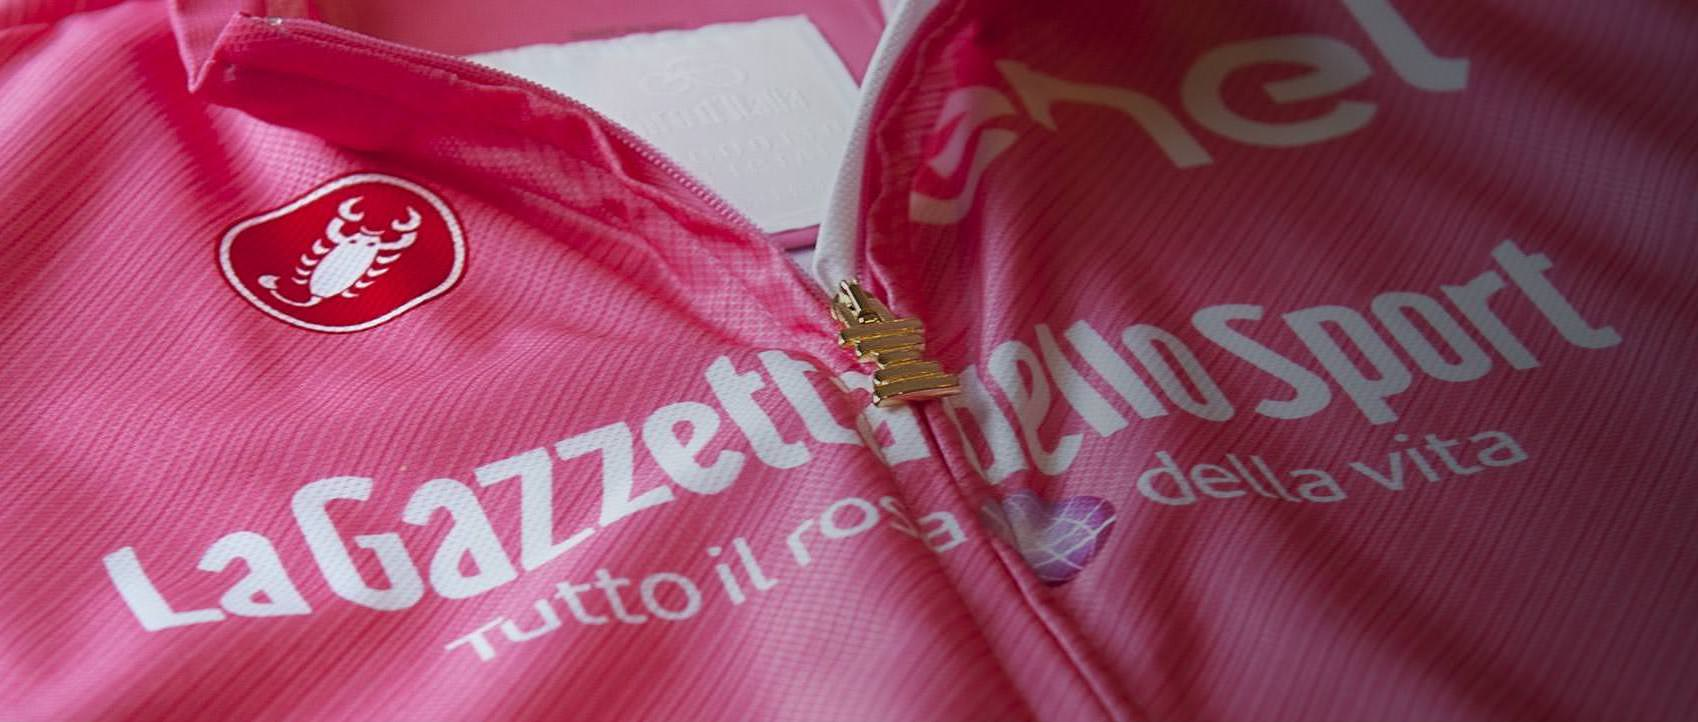 The Giro brings out the pinkness in all Cyclists